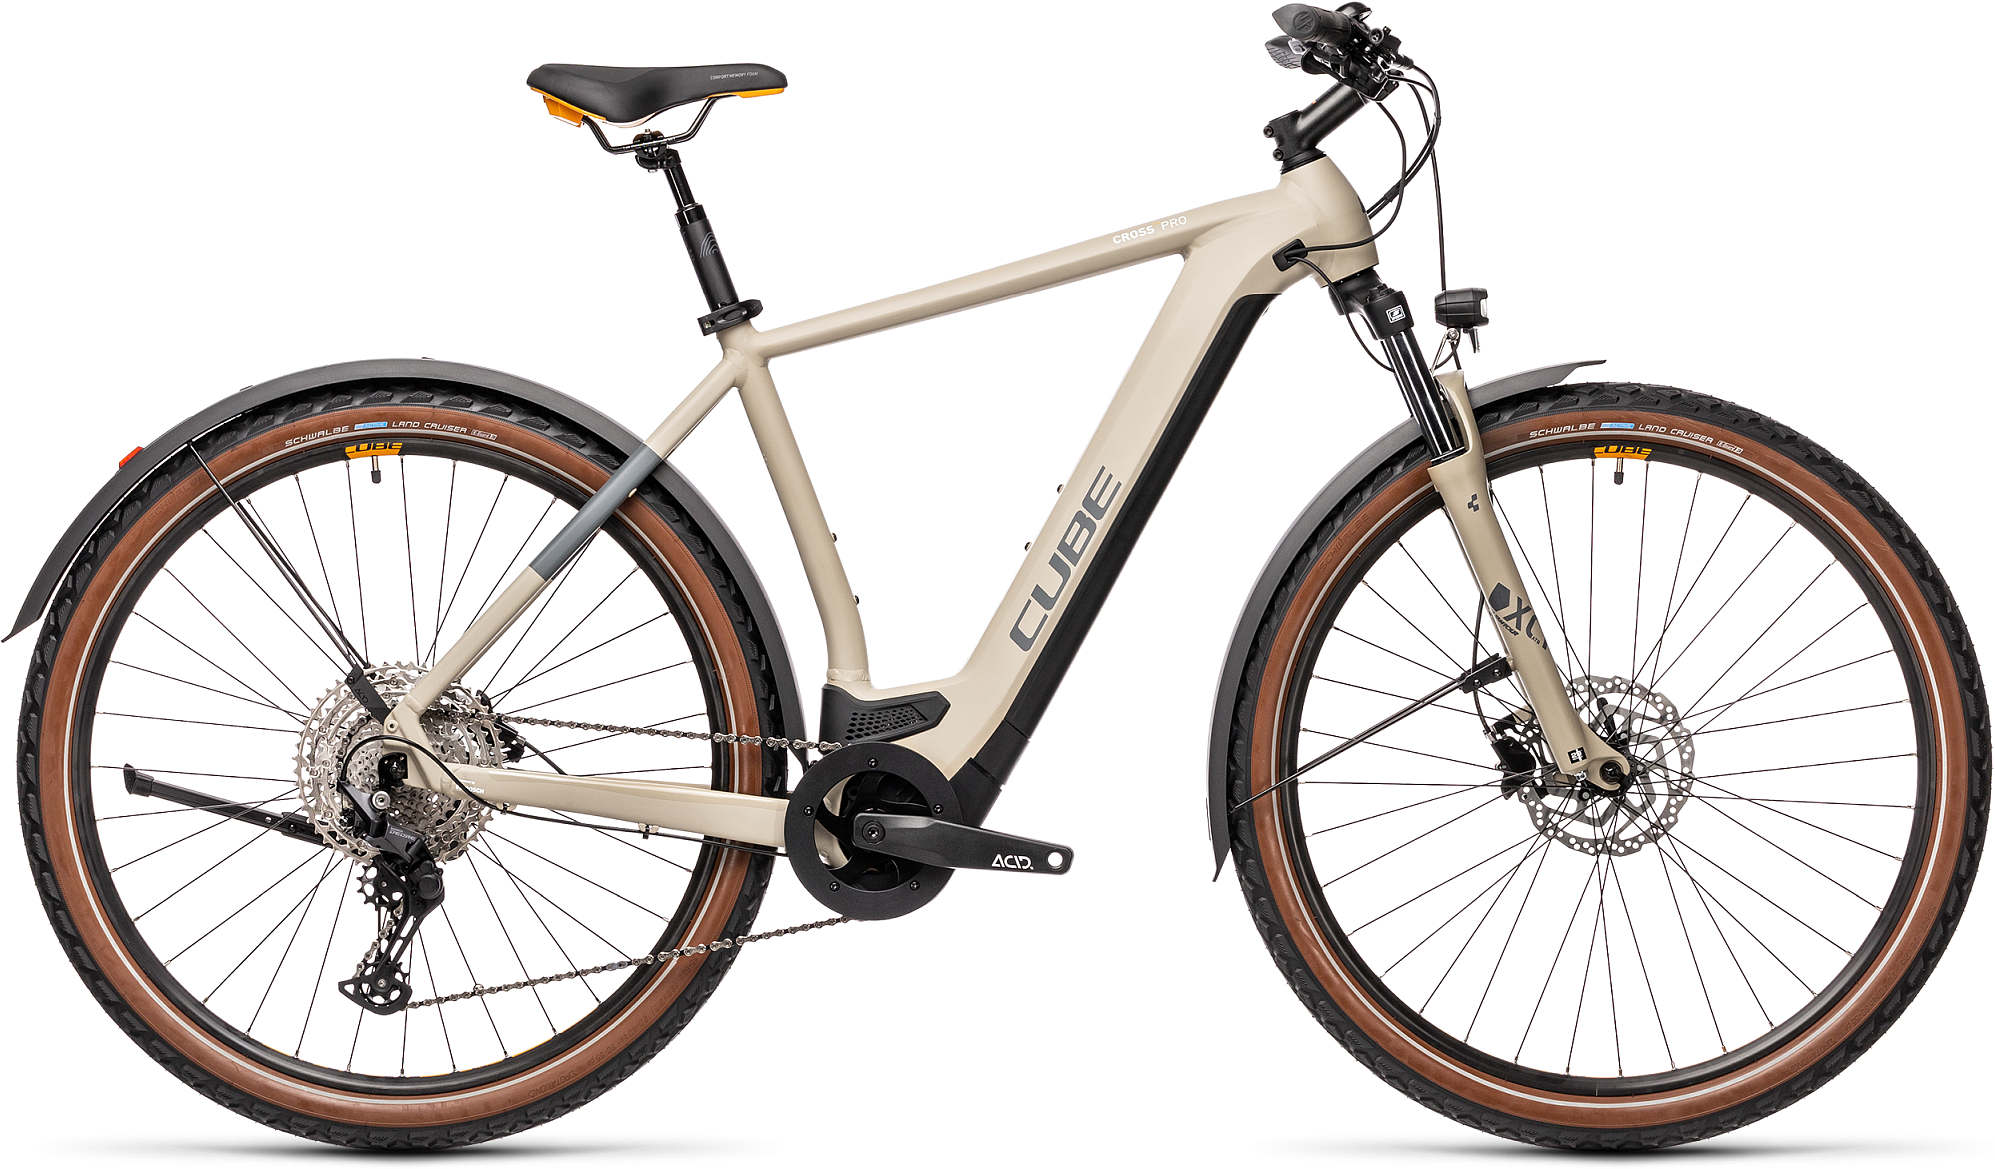 CUBE CROSS HYBRID PRO 625 ALLROAD DESERT/ORANGE 2021